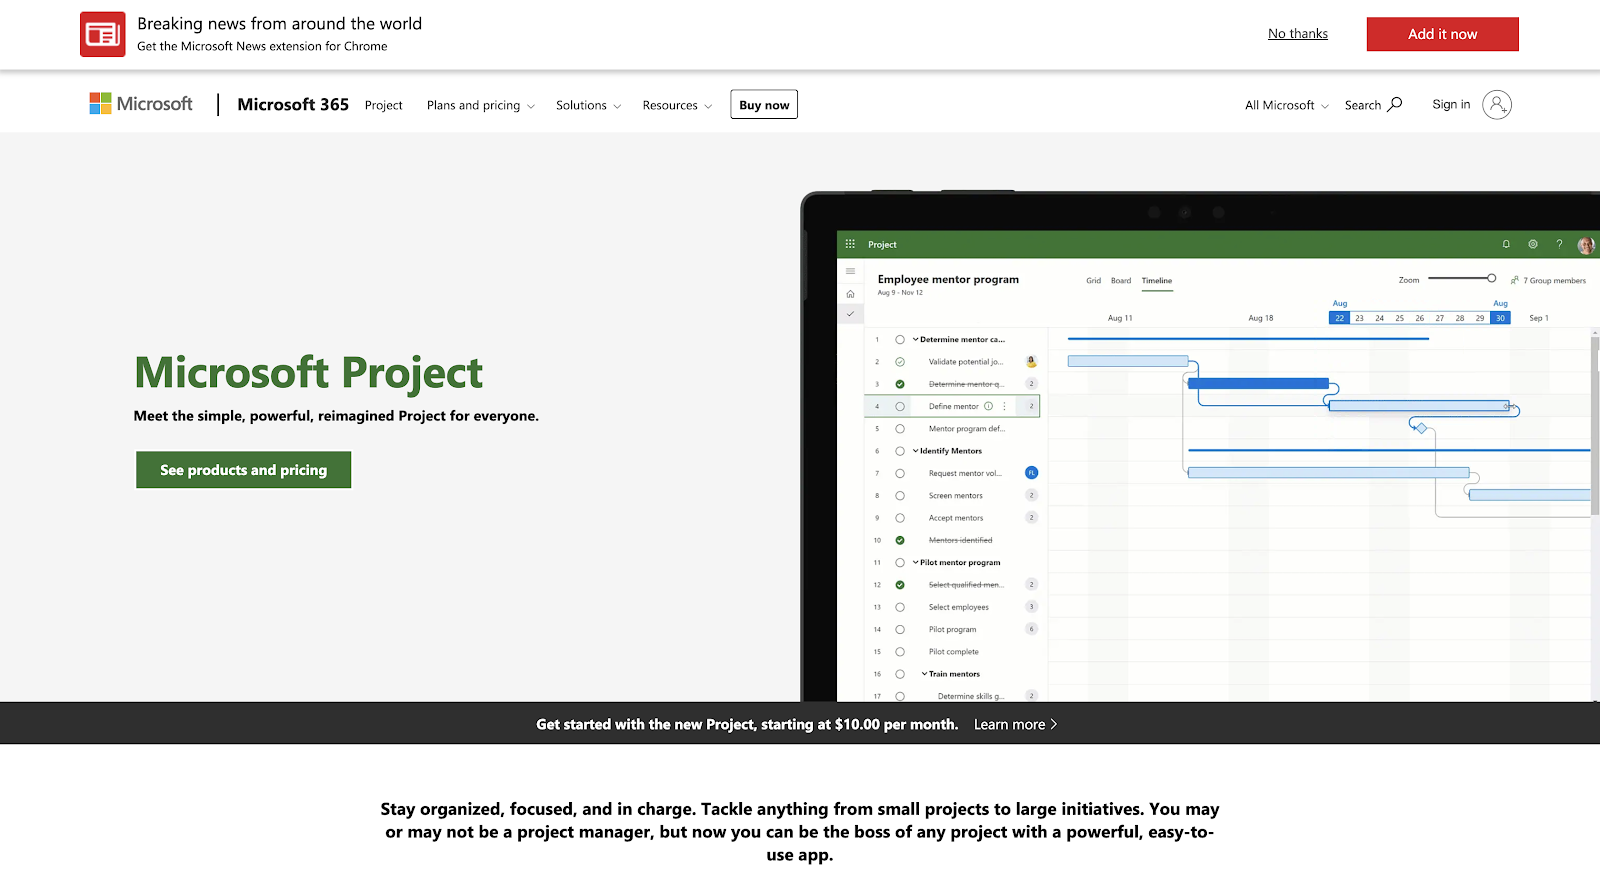 Microsoft Project - Meet the simple, powerful, reimagined Project for everyone